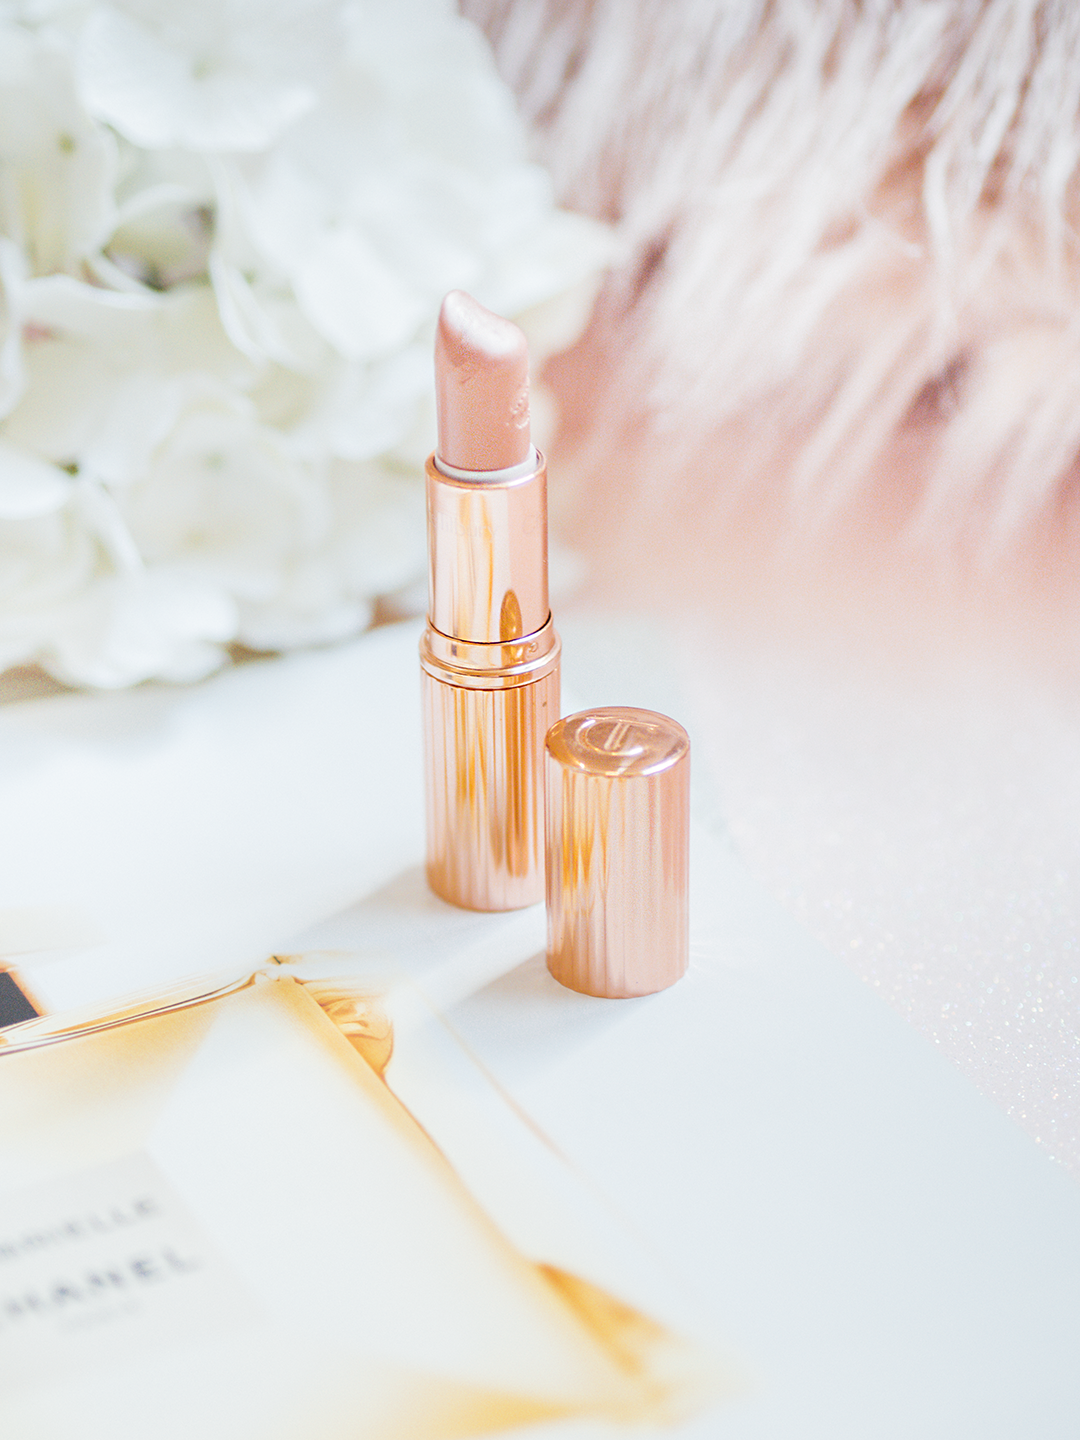 January Makeup: The Top Three Charlotte Tilbury Penelope Pink